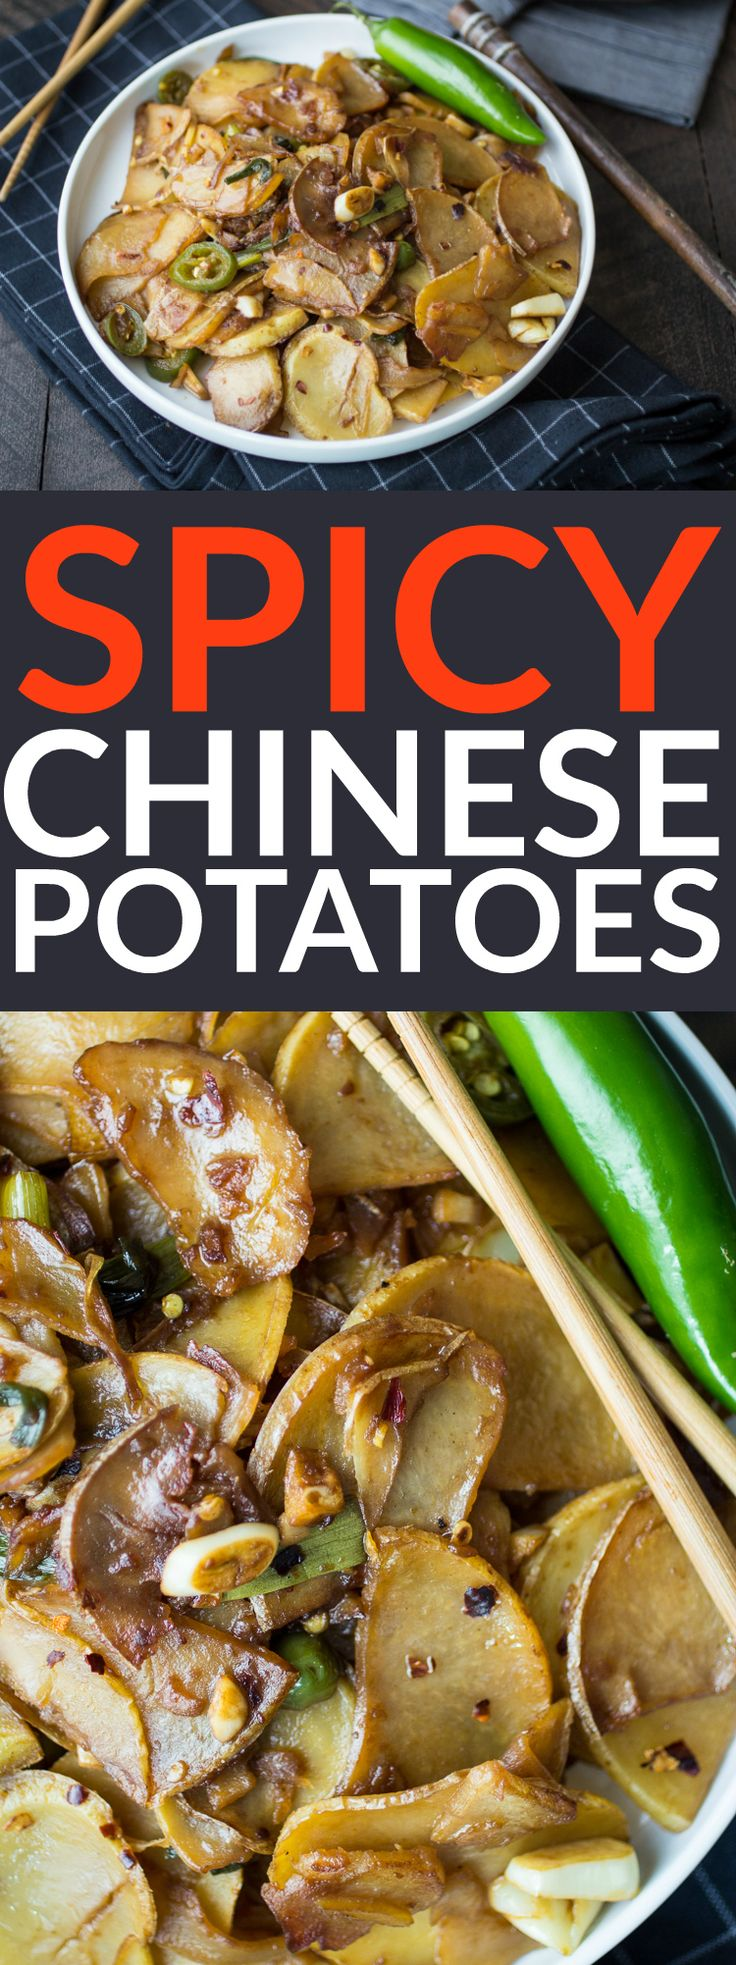 452 best asian indian food and recipes images on pinterest asian spicy chinese potatoes are the perfect easy side dish for chinese take out night forumfinder Choice Image